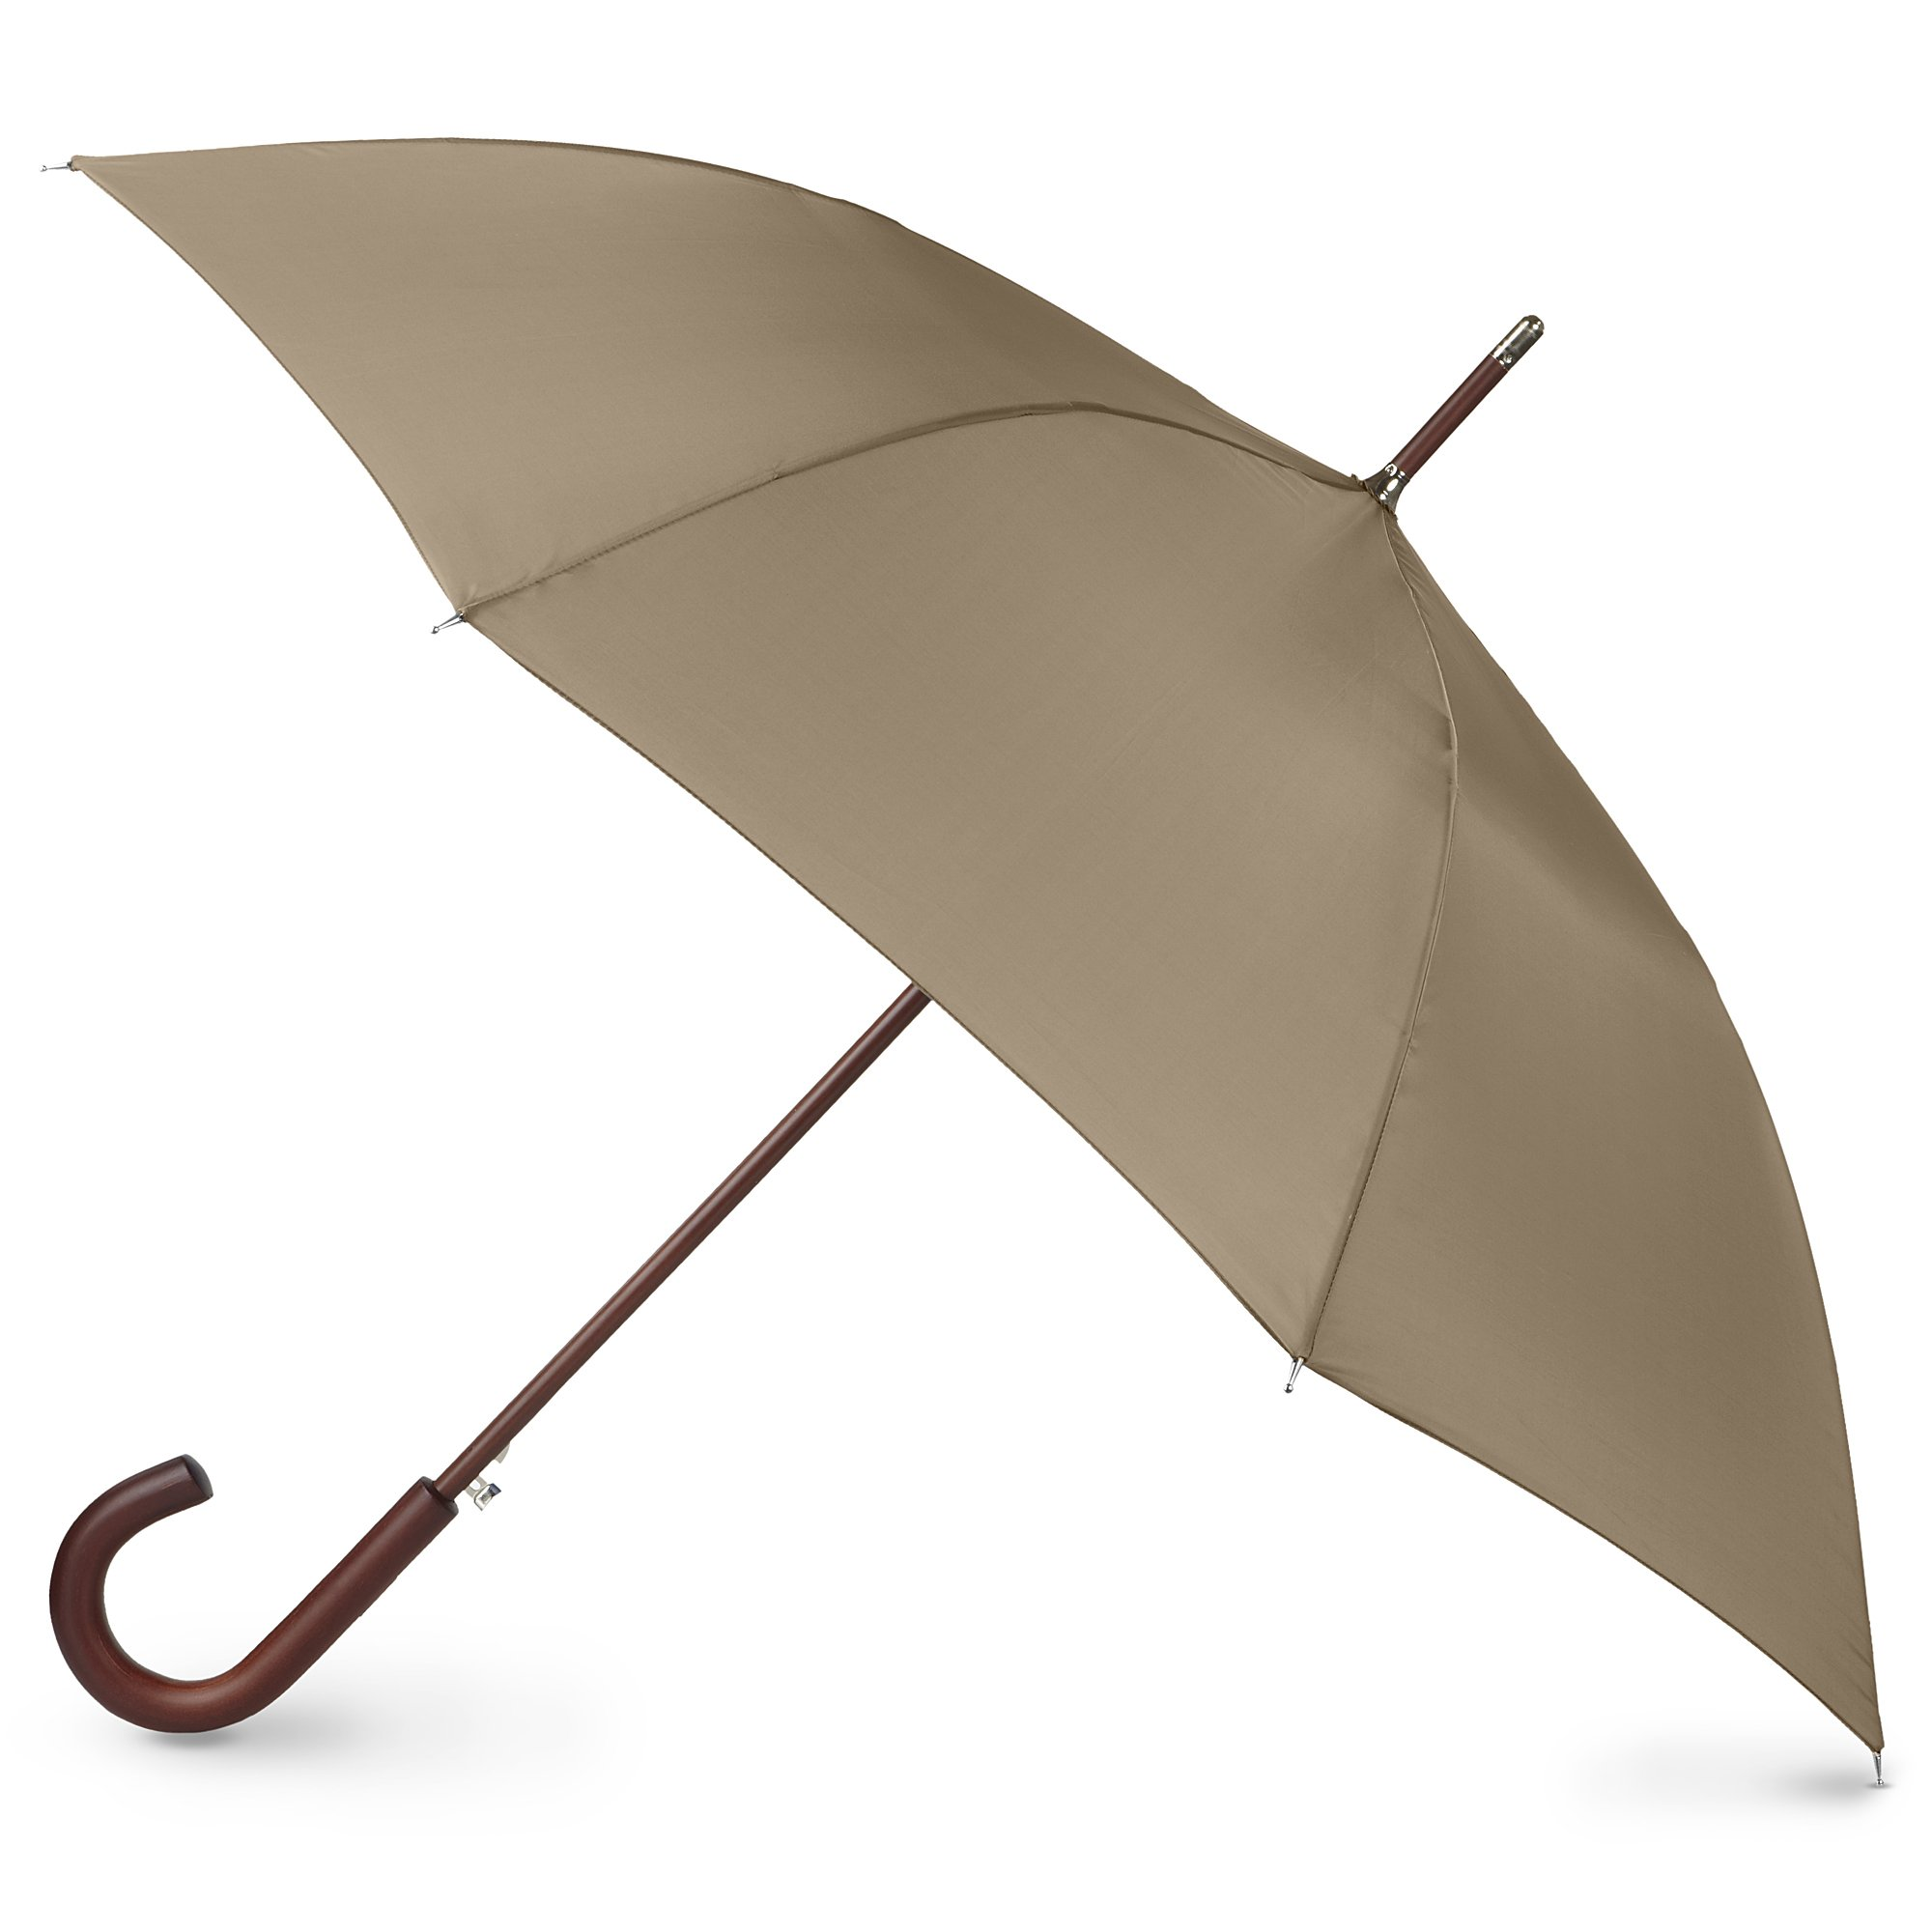 totes Auto Open Wooden Stick Umbrella,  British Tan,  One Size by totes